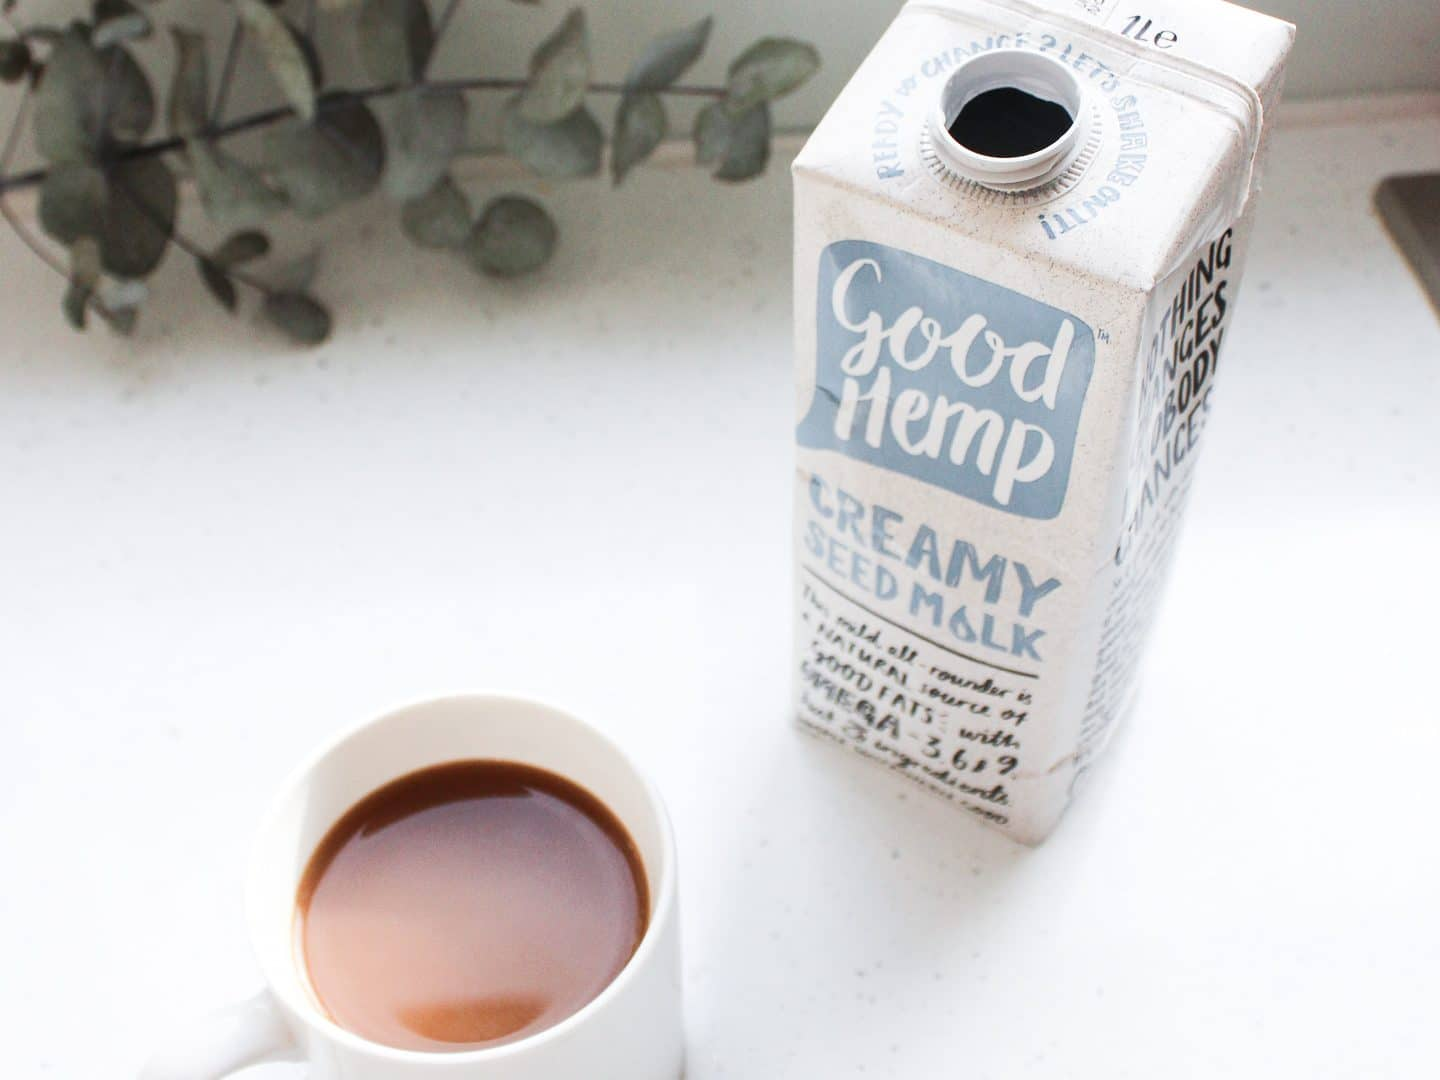 Good Hemp's hemp milk next to coffee